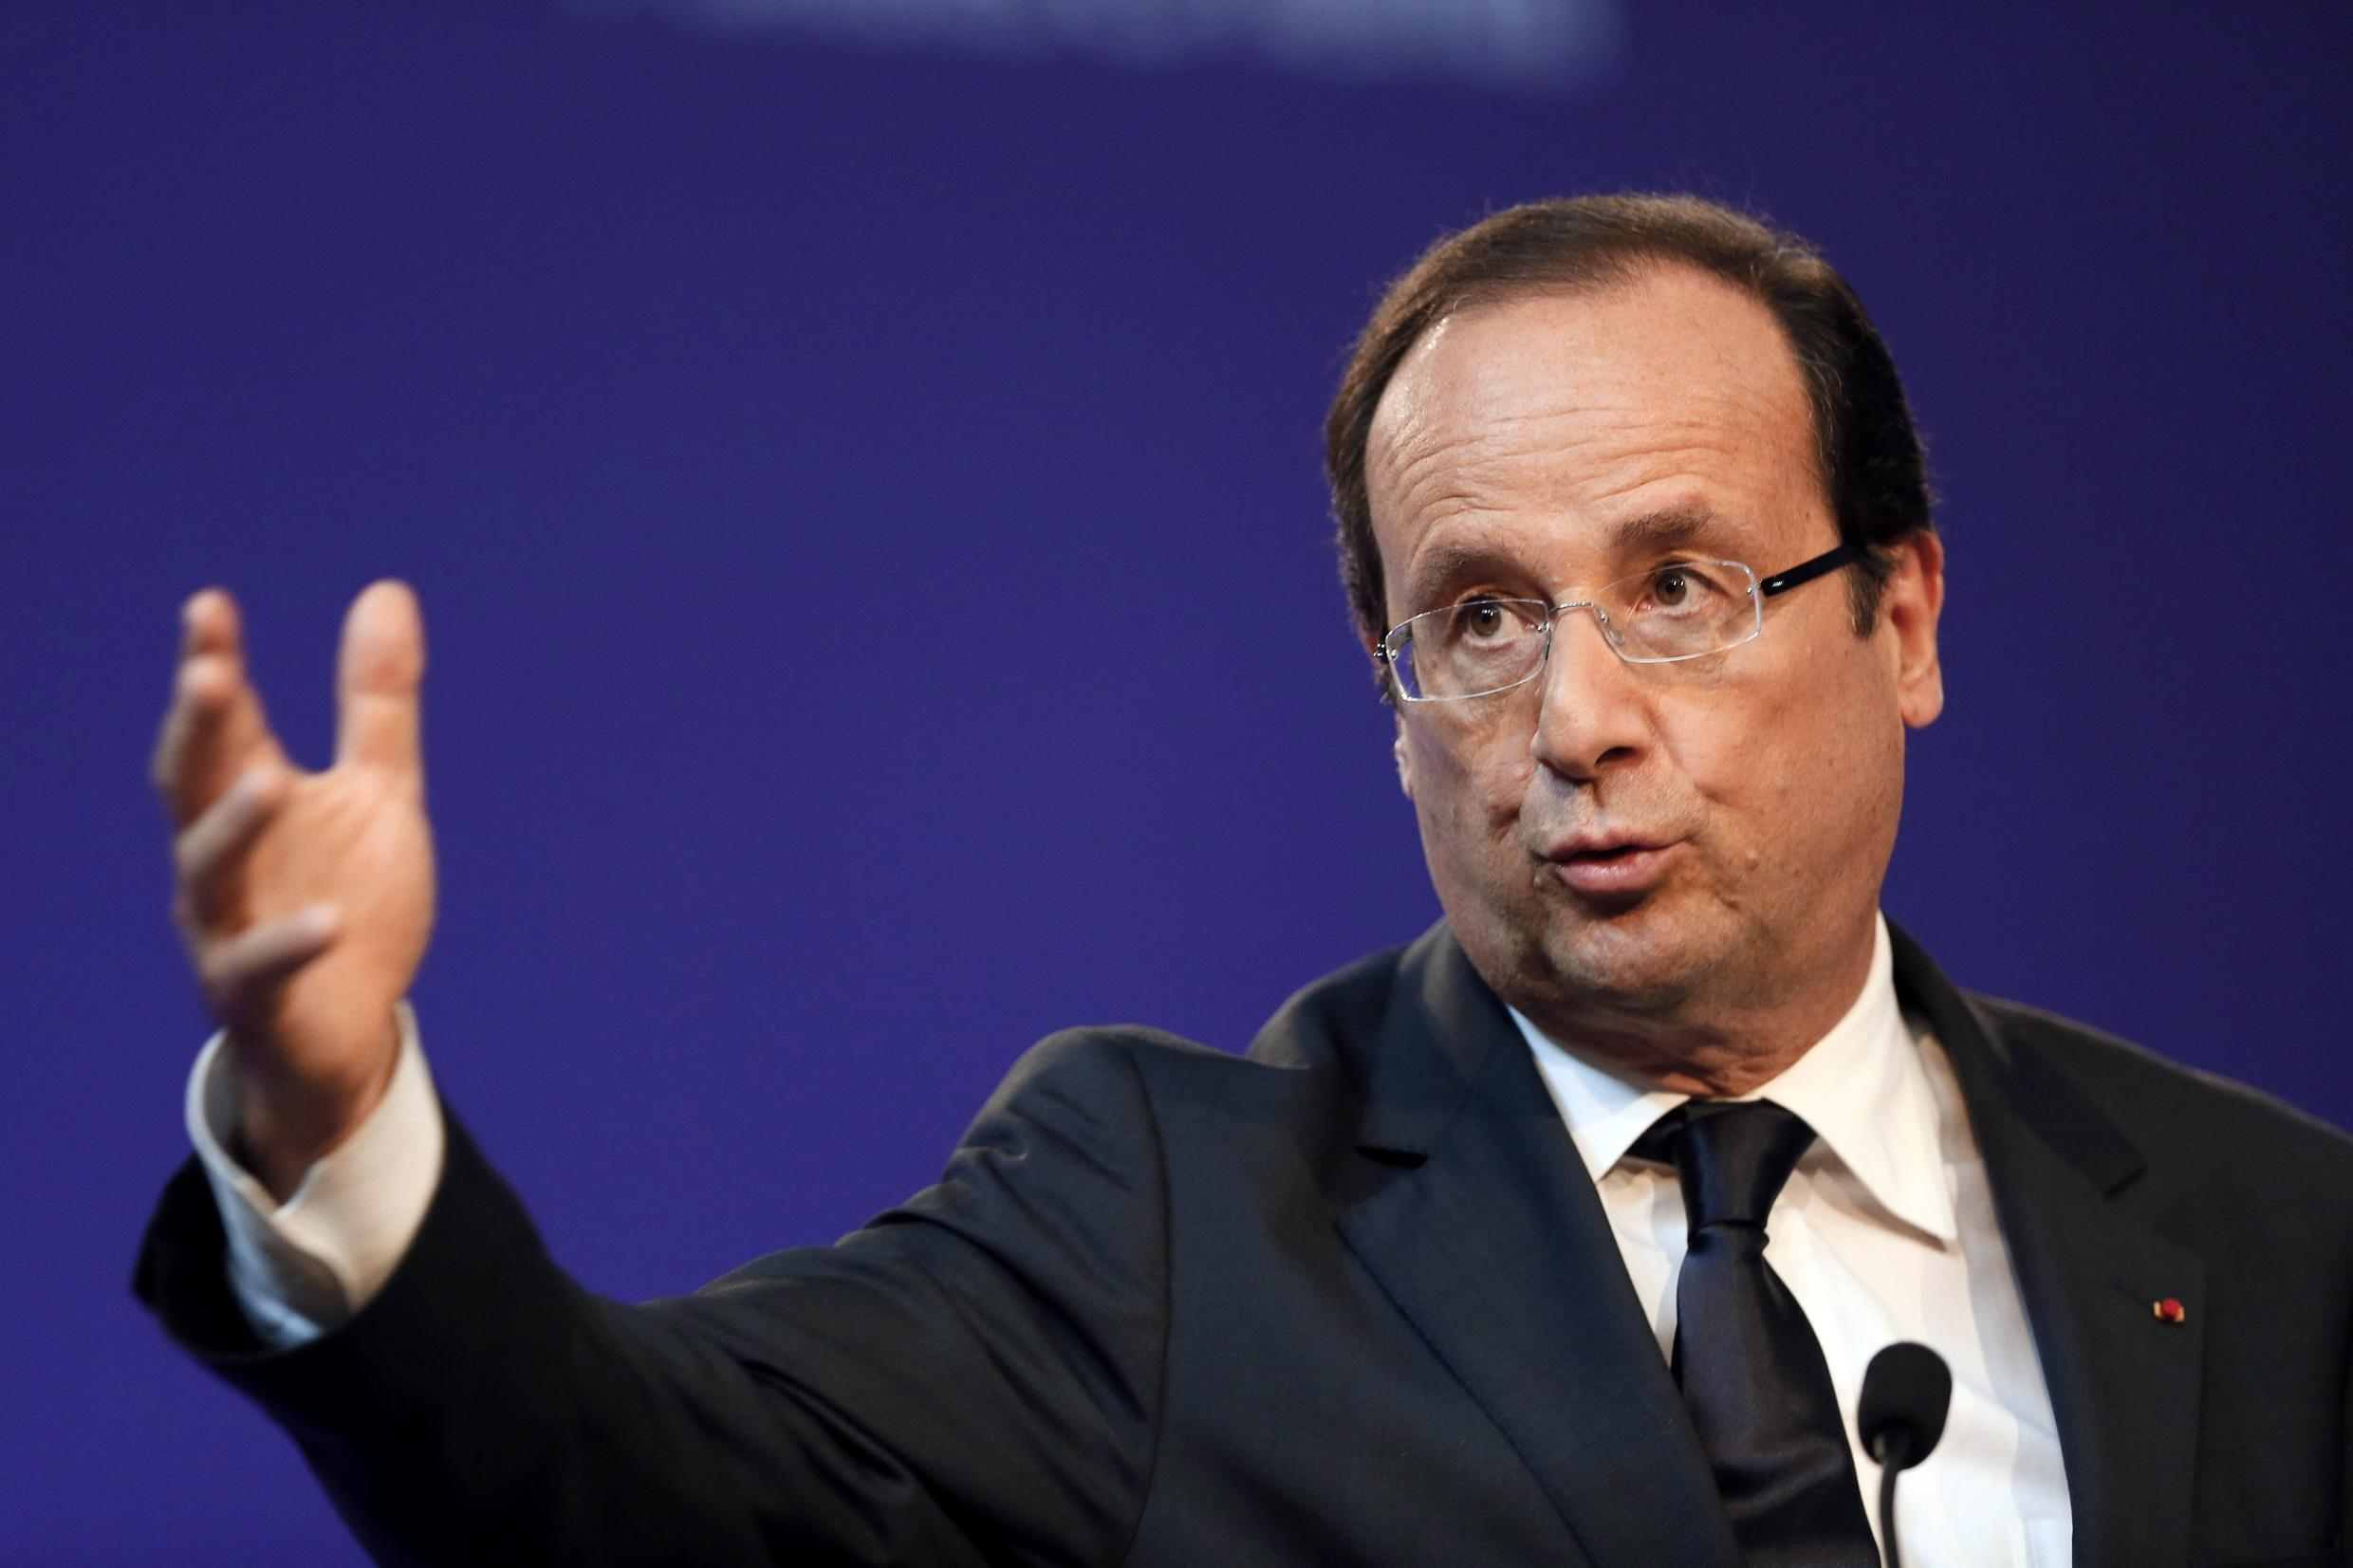 François Hollande opens the conference on social policy Monday